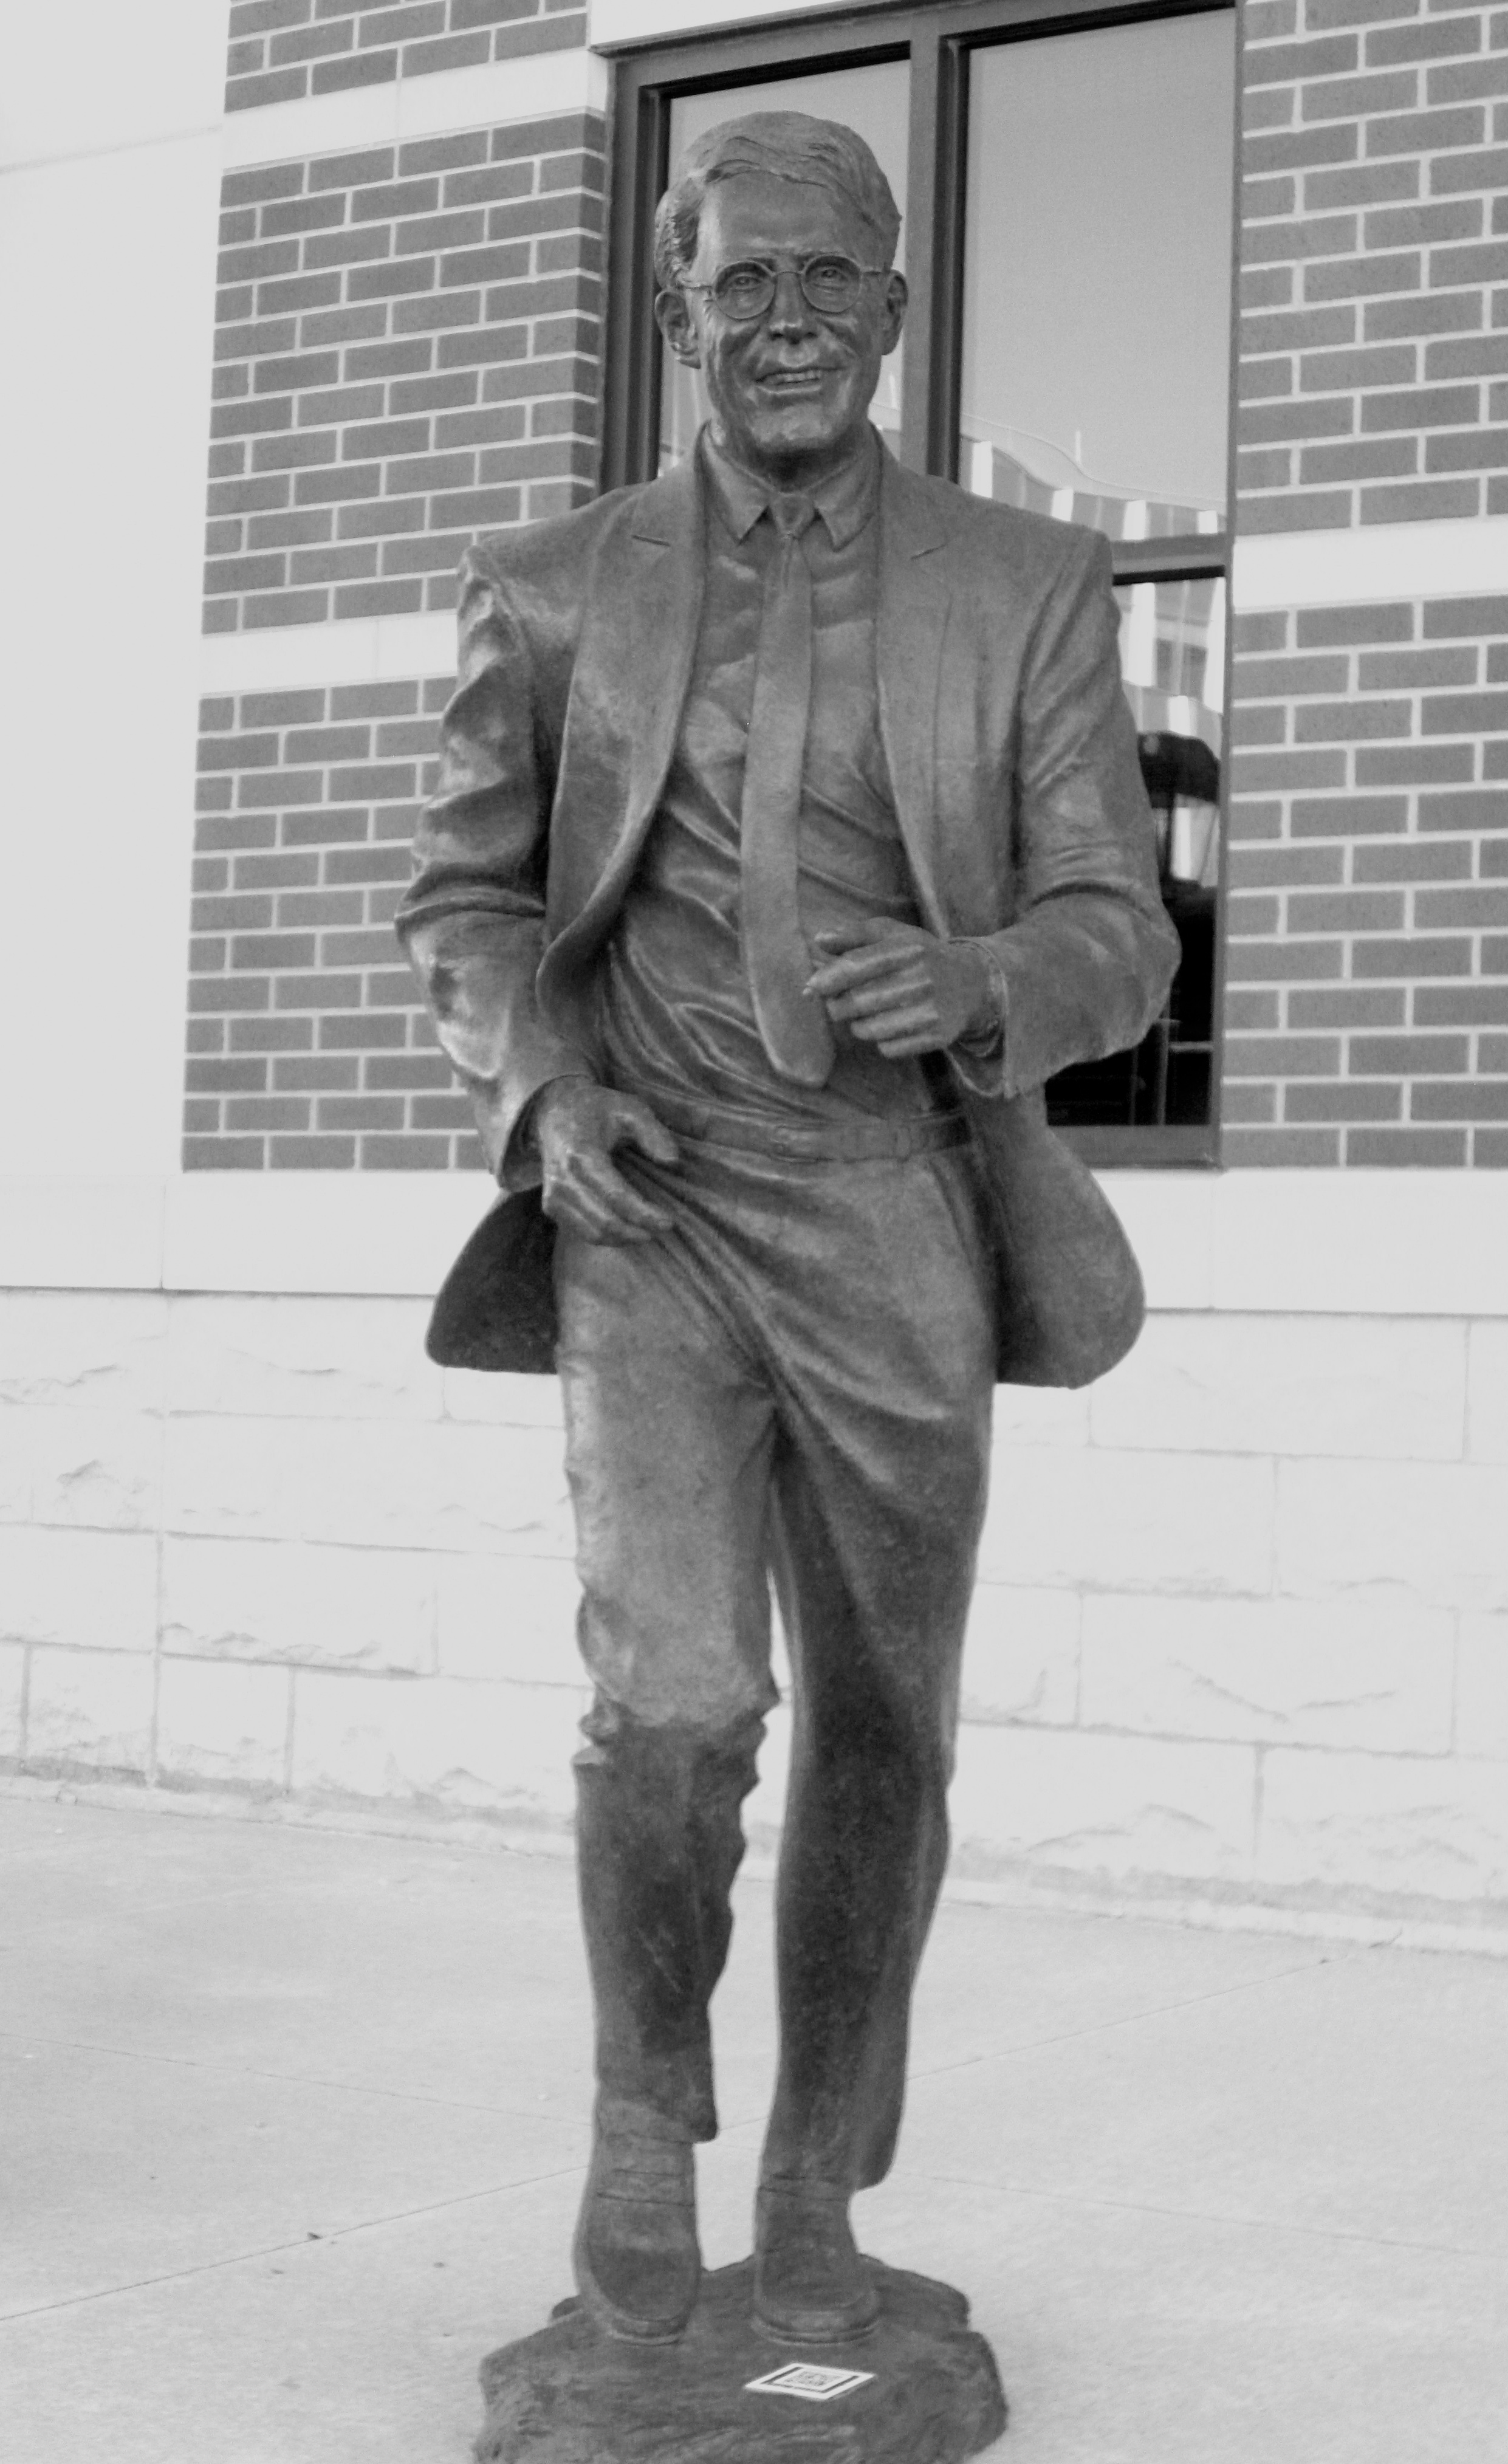 The Frank Farrar bronze in place, on Sioux Avenue, on the North side of First National Bank in Pierre. Not really  my favorite placement for the piece.  If you're not used to it, it can be a little disconcerting driving up the street and seeing a guy about to dash in front of you. Someone once did hang a $$$ sack from his hand just for fun, though.